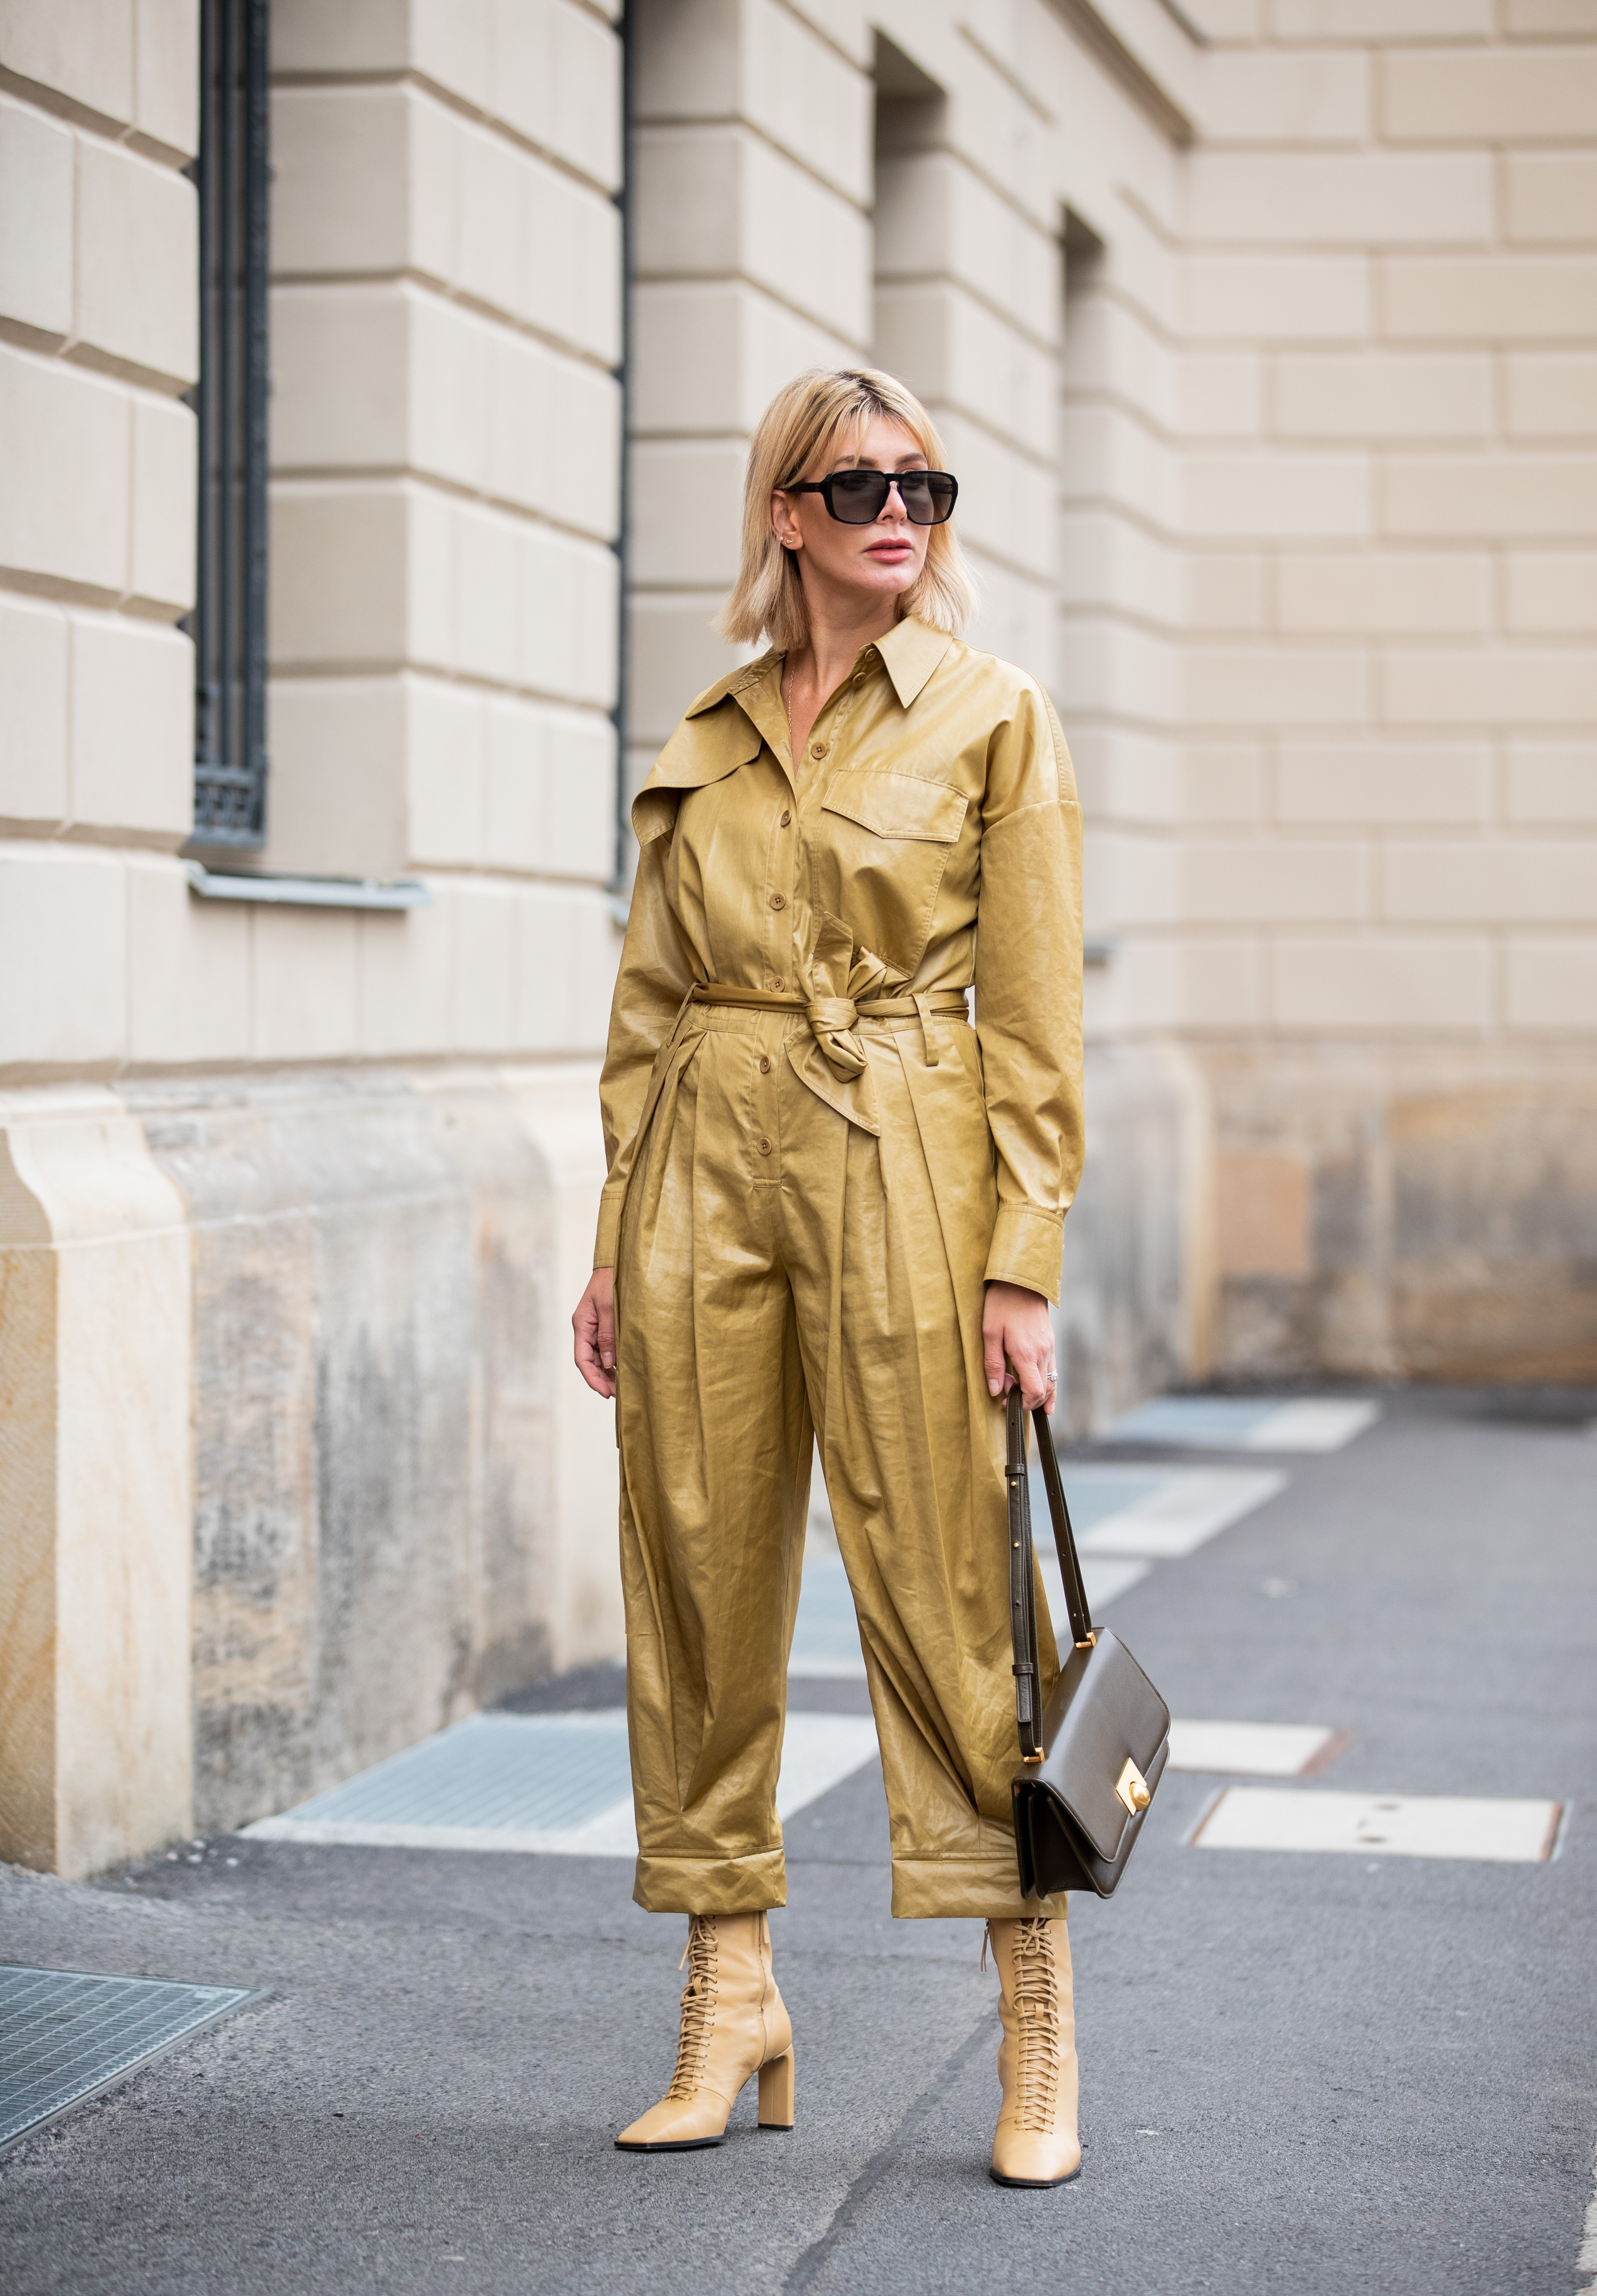 BERLIN, GERMANY - NOVEMBER 15: Victoria Nasir is seen wearing light brown jumpsuit Tibi, BV classic bag in khaki Bottega Veneta, laced up boots Zara, sunglasses on November 15, 2019 in Berlin, Germany. (Photo by Christian Vierig/Getty Images) (Foto: Getty Images)